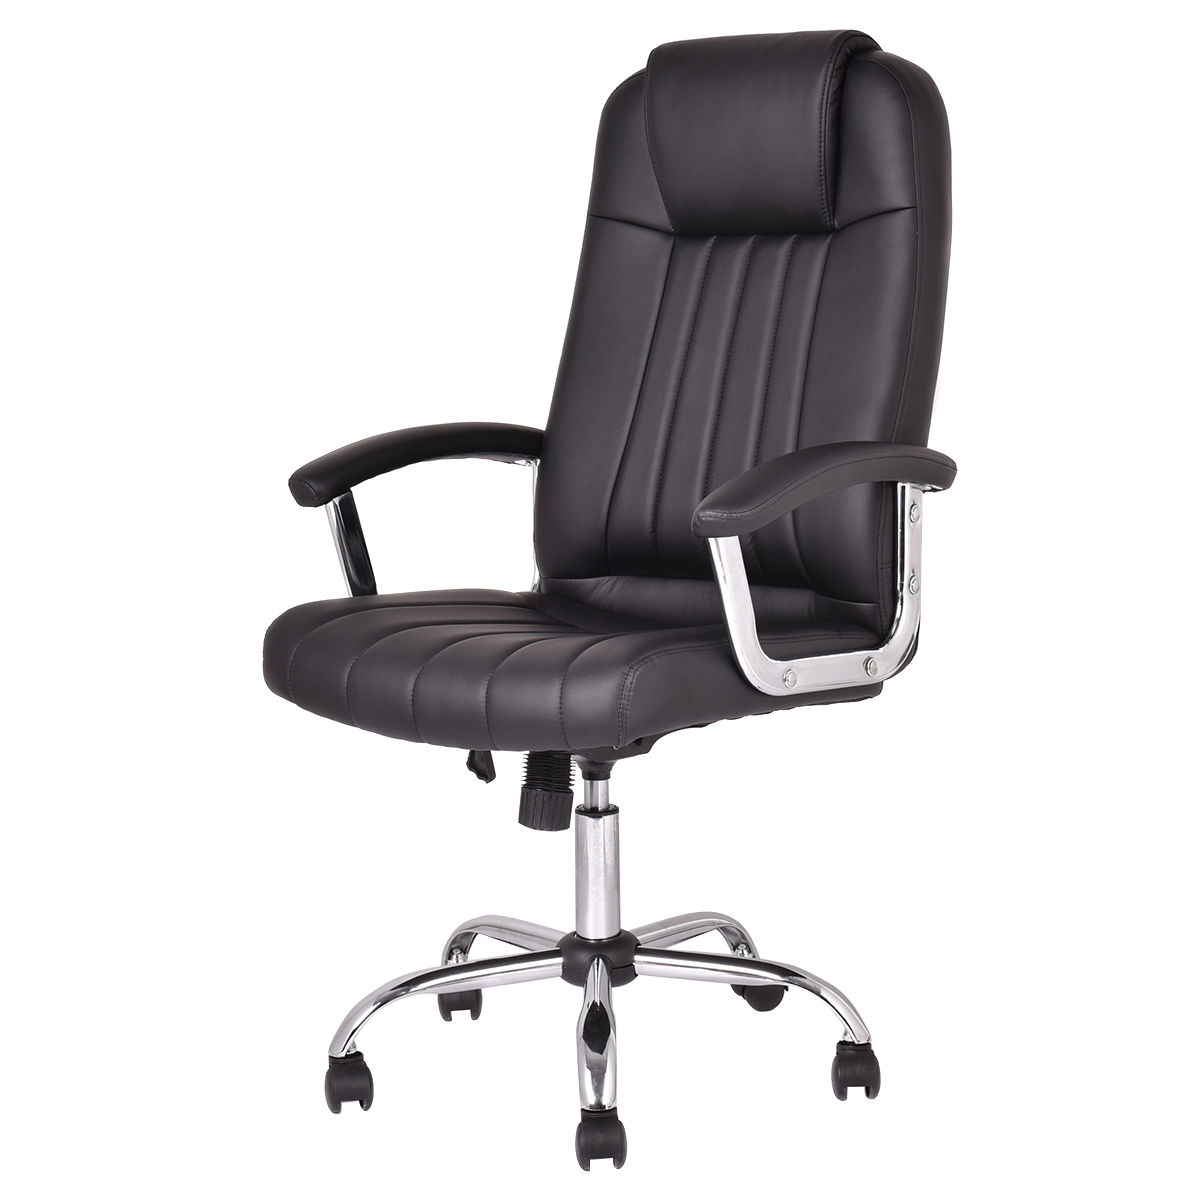 Giantex New Ergonomic PU Leather High Back Gaming Chair Modern Swivel Executive Computer Desk Task Office Chair HW53039 240340 high quality back pillow office chair 3d handrail function computer household ergonomic chair 360 degree rotating seat